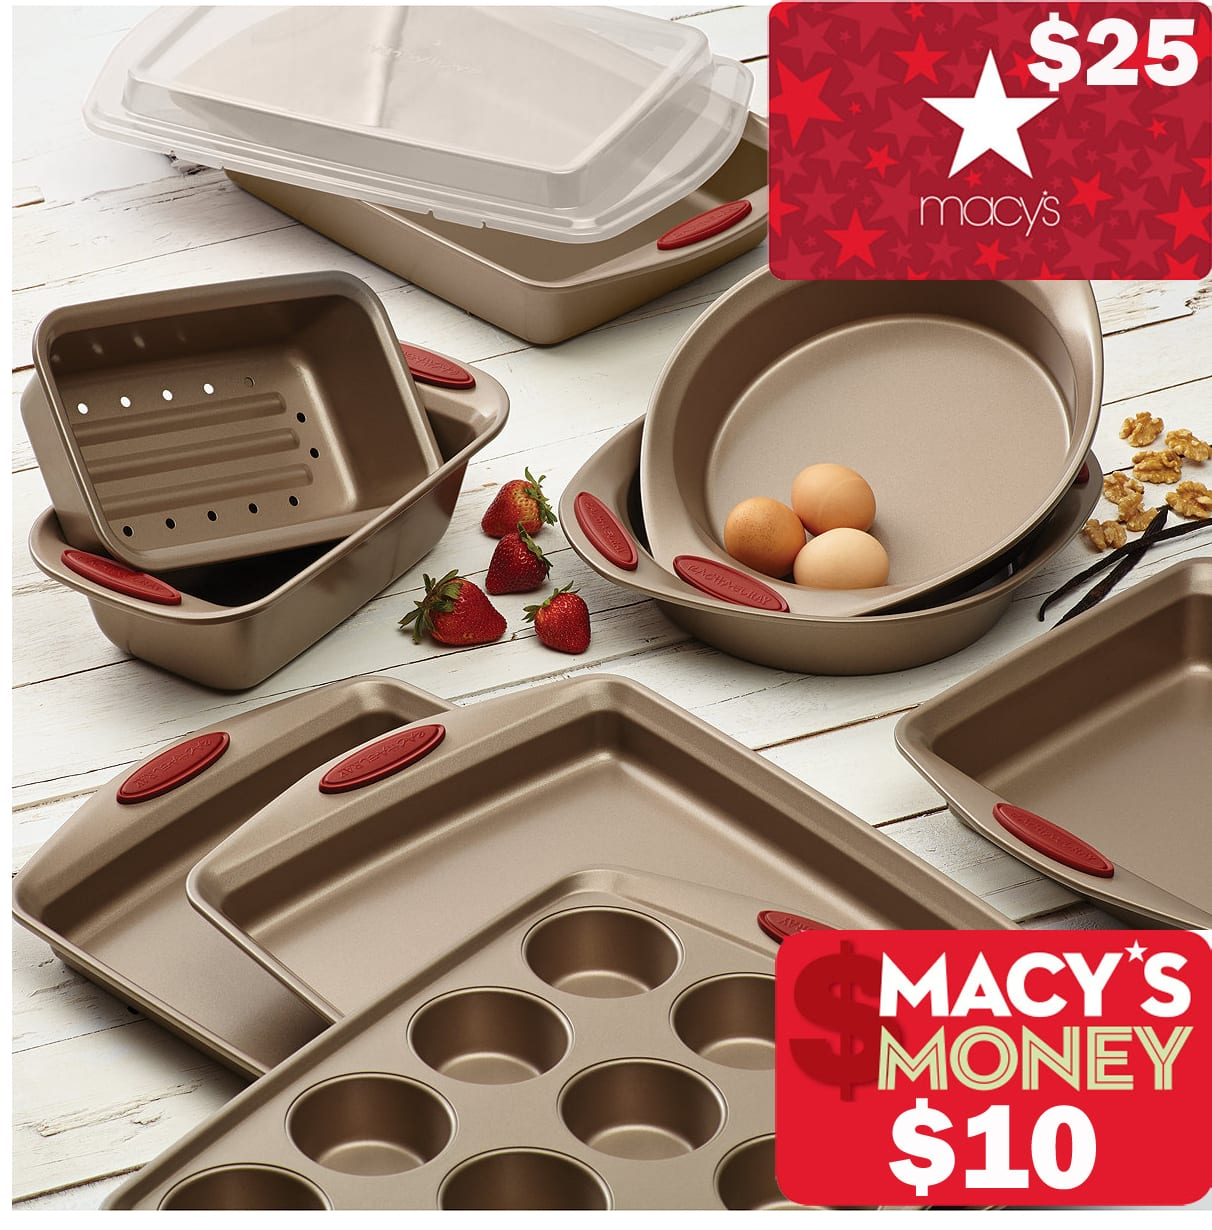 Slickdeals Rebate: $25 Macy's Egift Card on $50+: 10-Piece Rachael Ray Cucina Bakeware Set + $25 eGC + $10 Macys Money $57.59 + free shipping